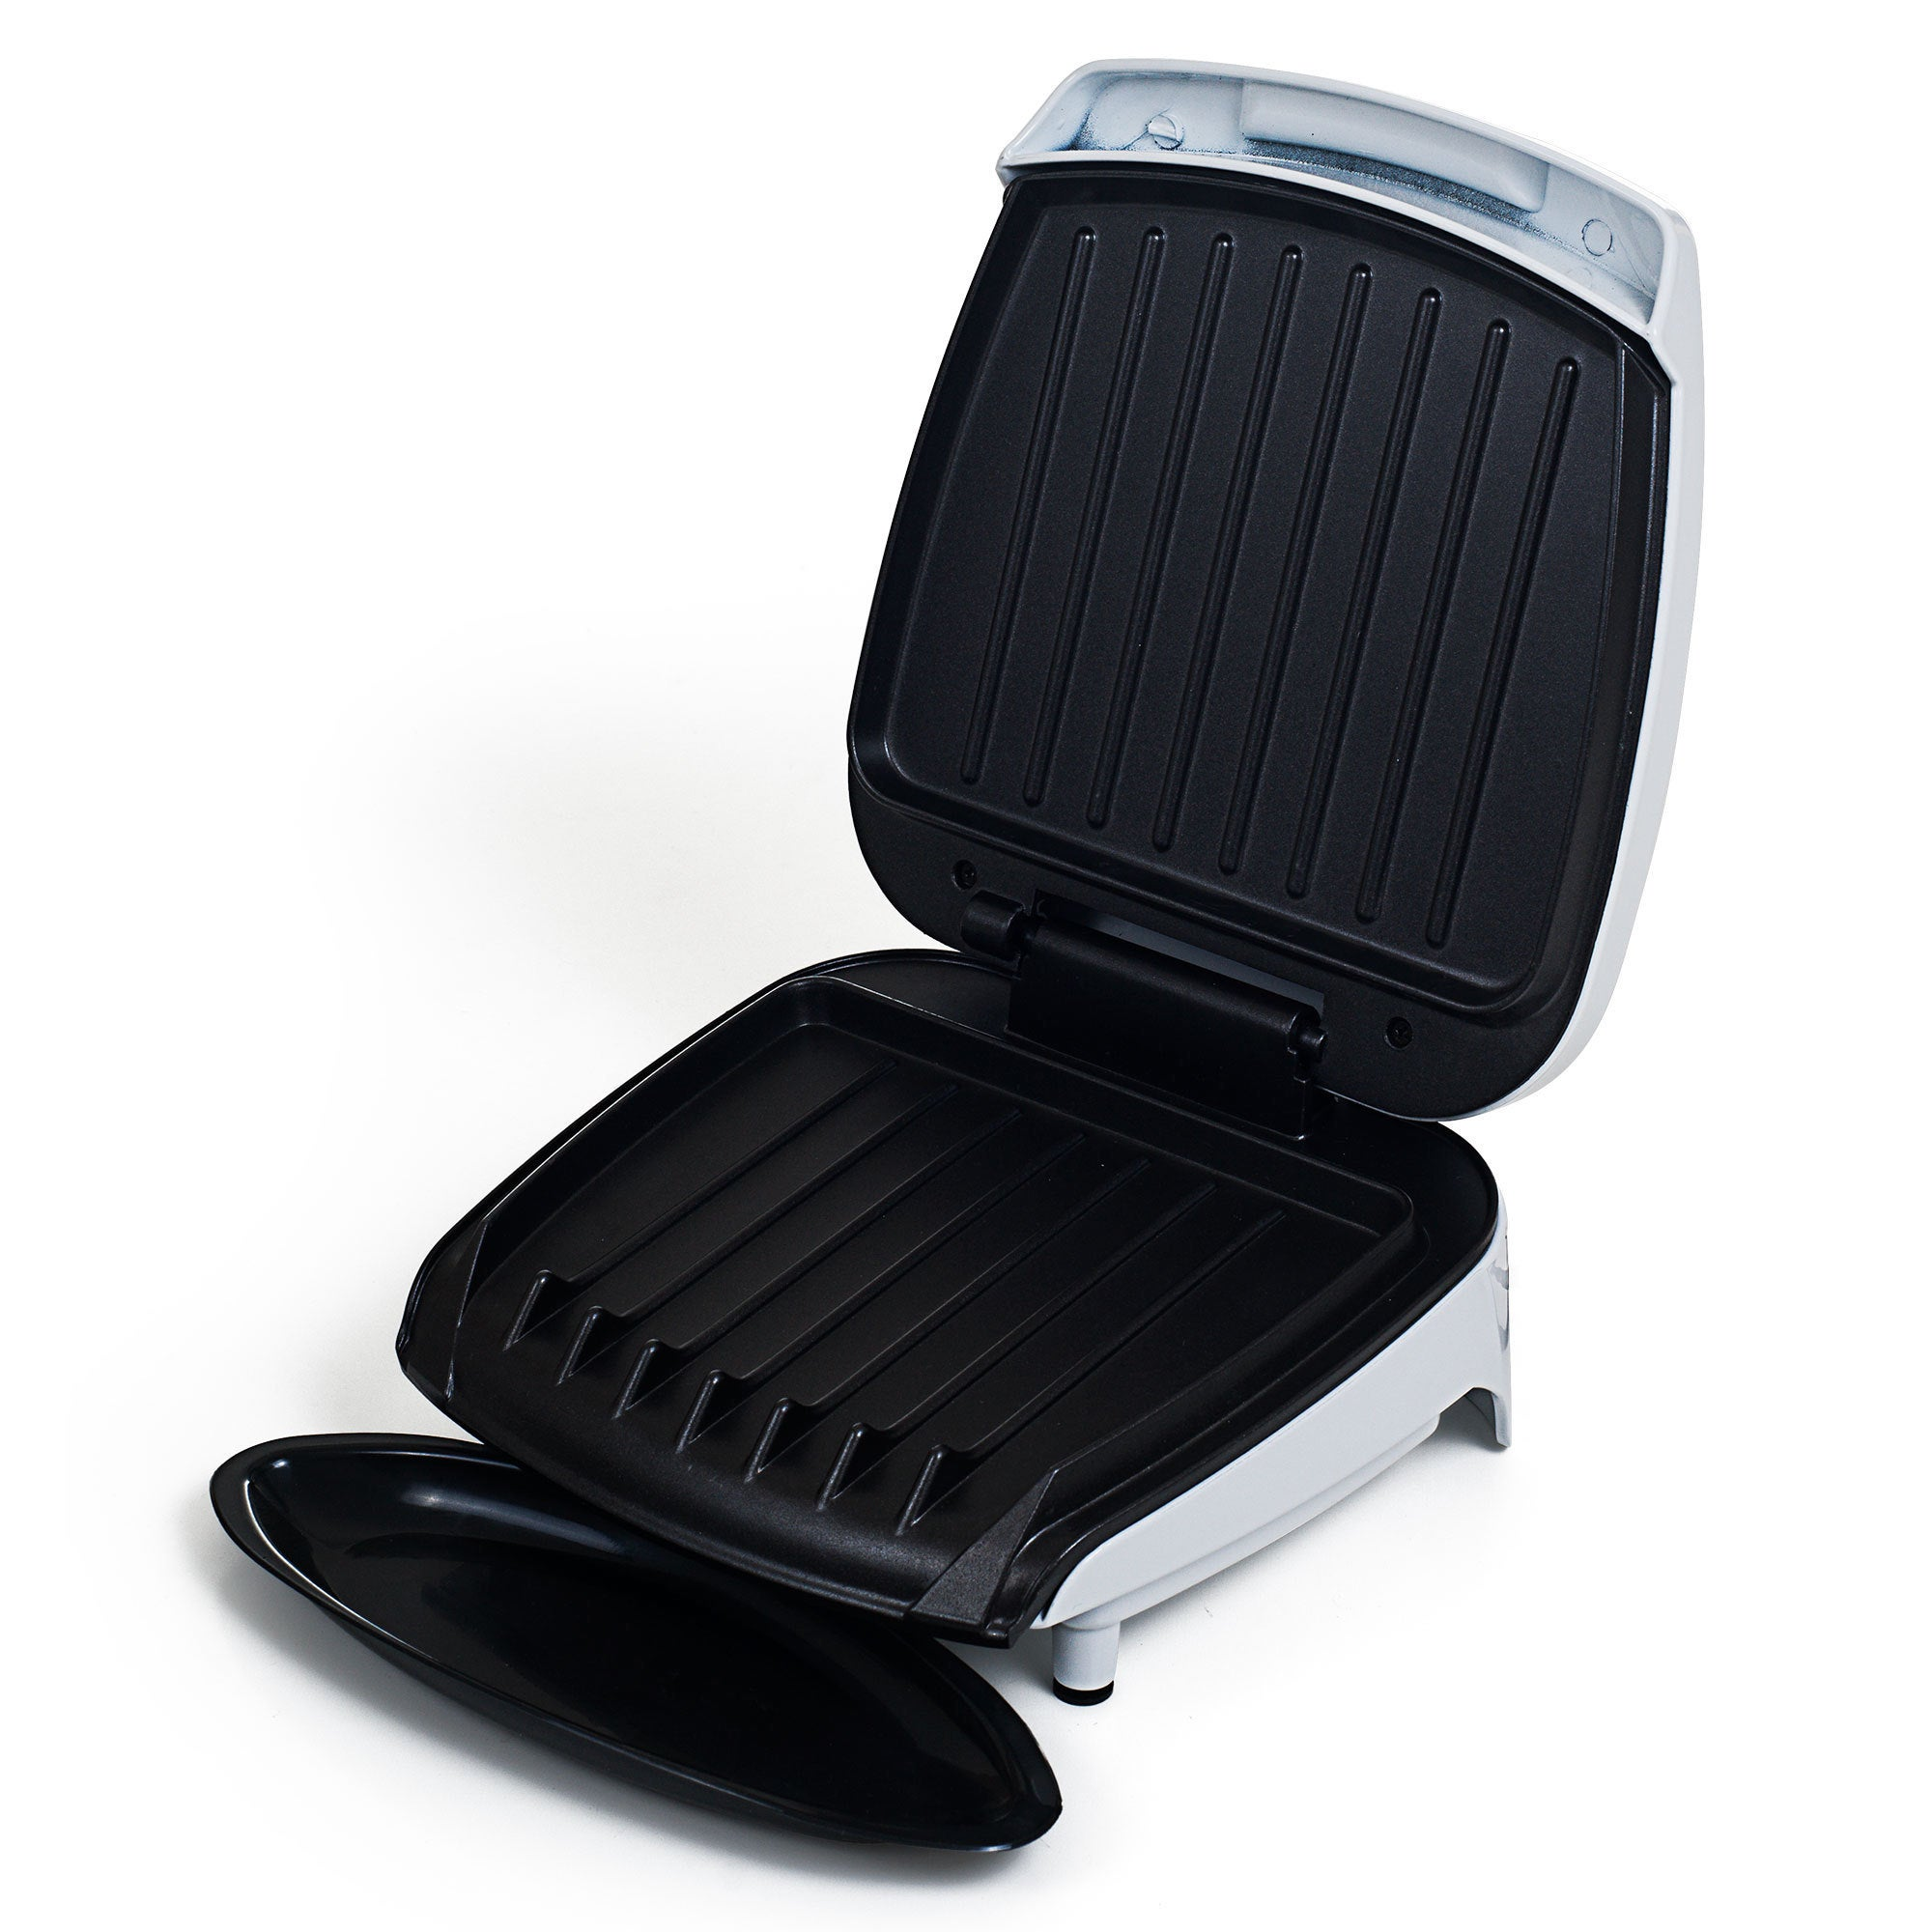 Electric Indoor Grill With Nonstick Plates for Low Fat He...